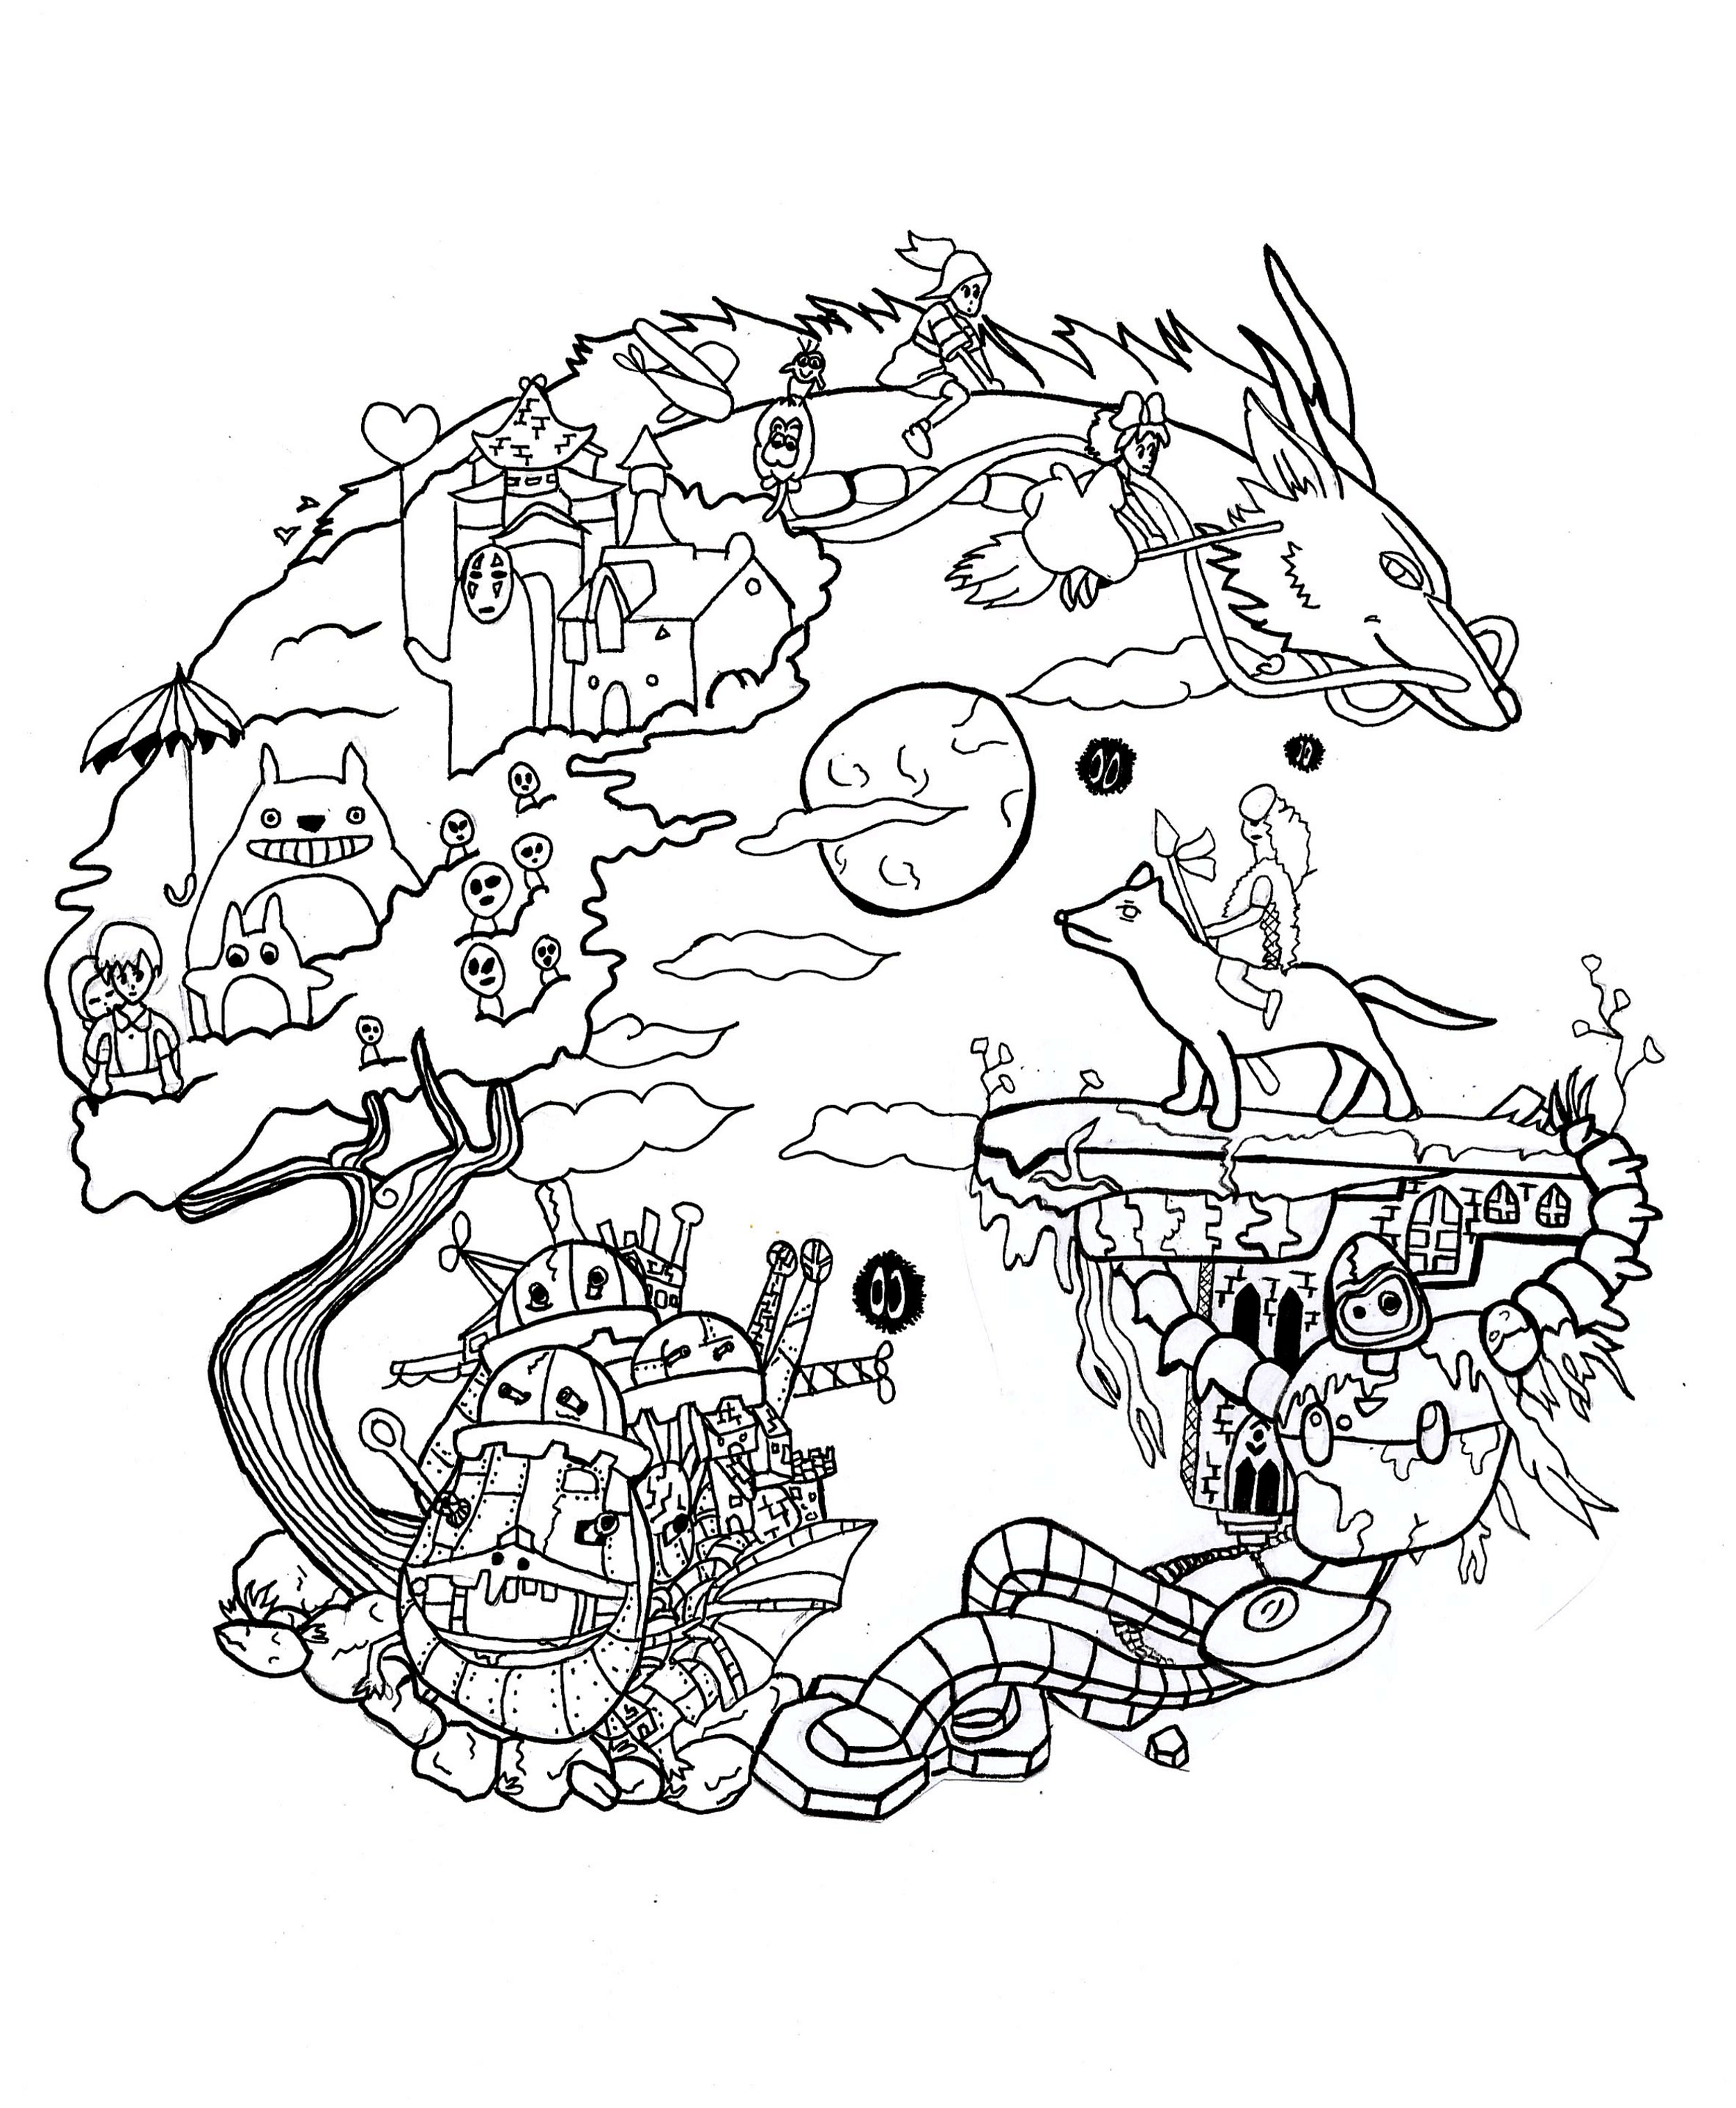 coloring studio ghibli by chloe - Manga Coloring Pages